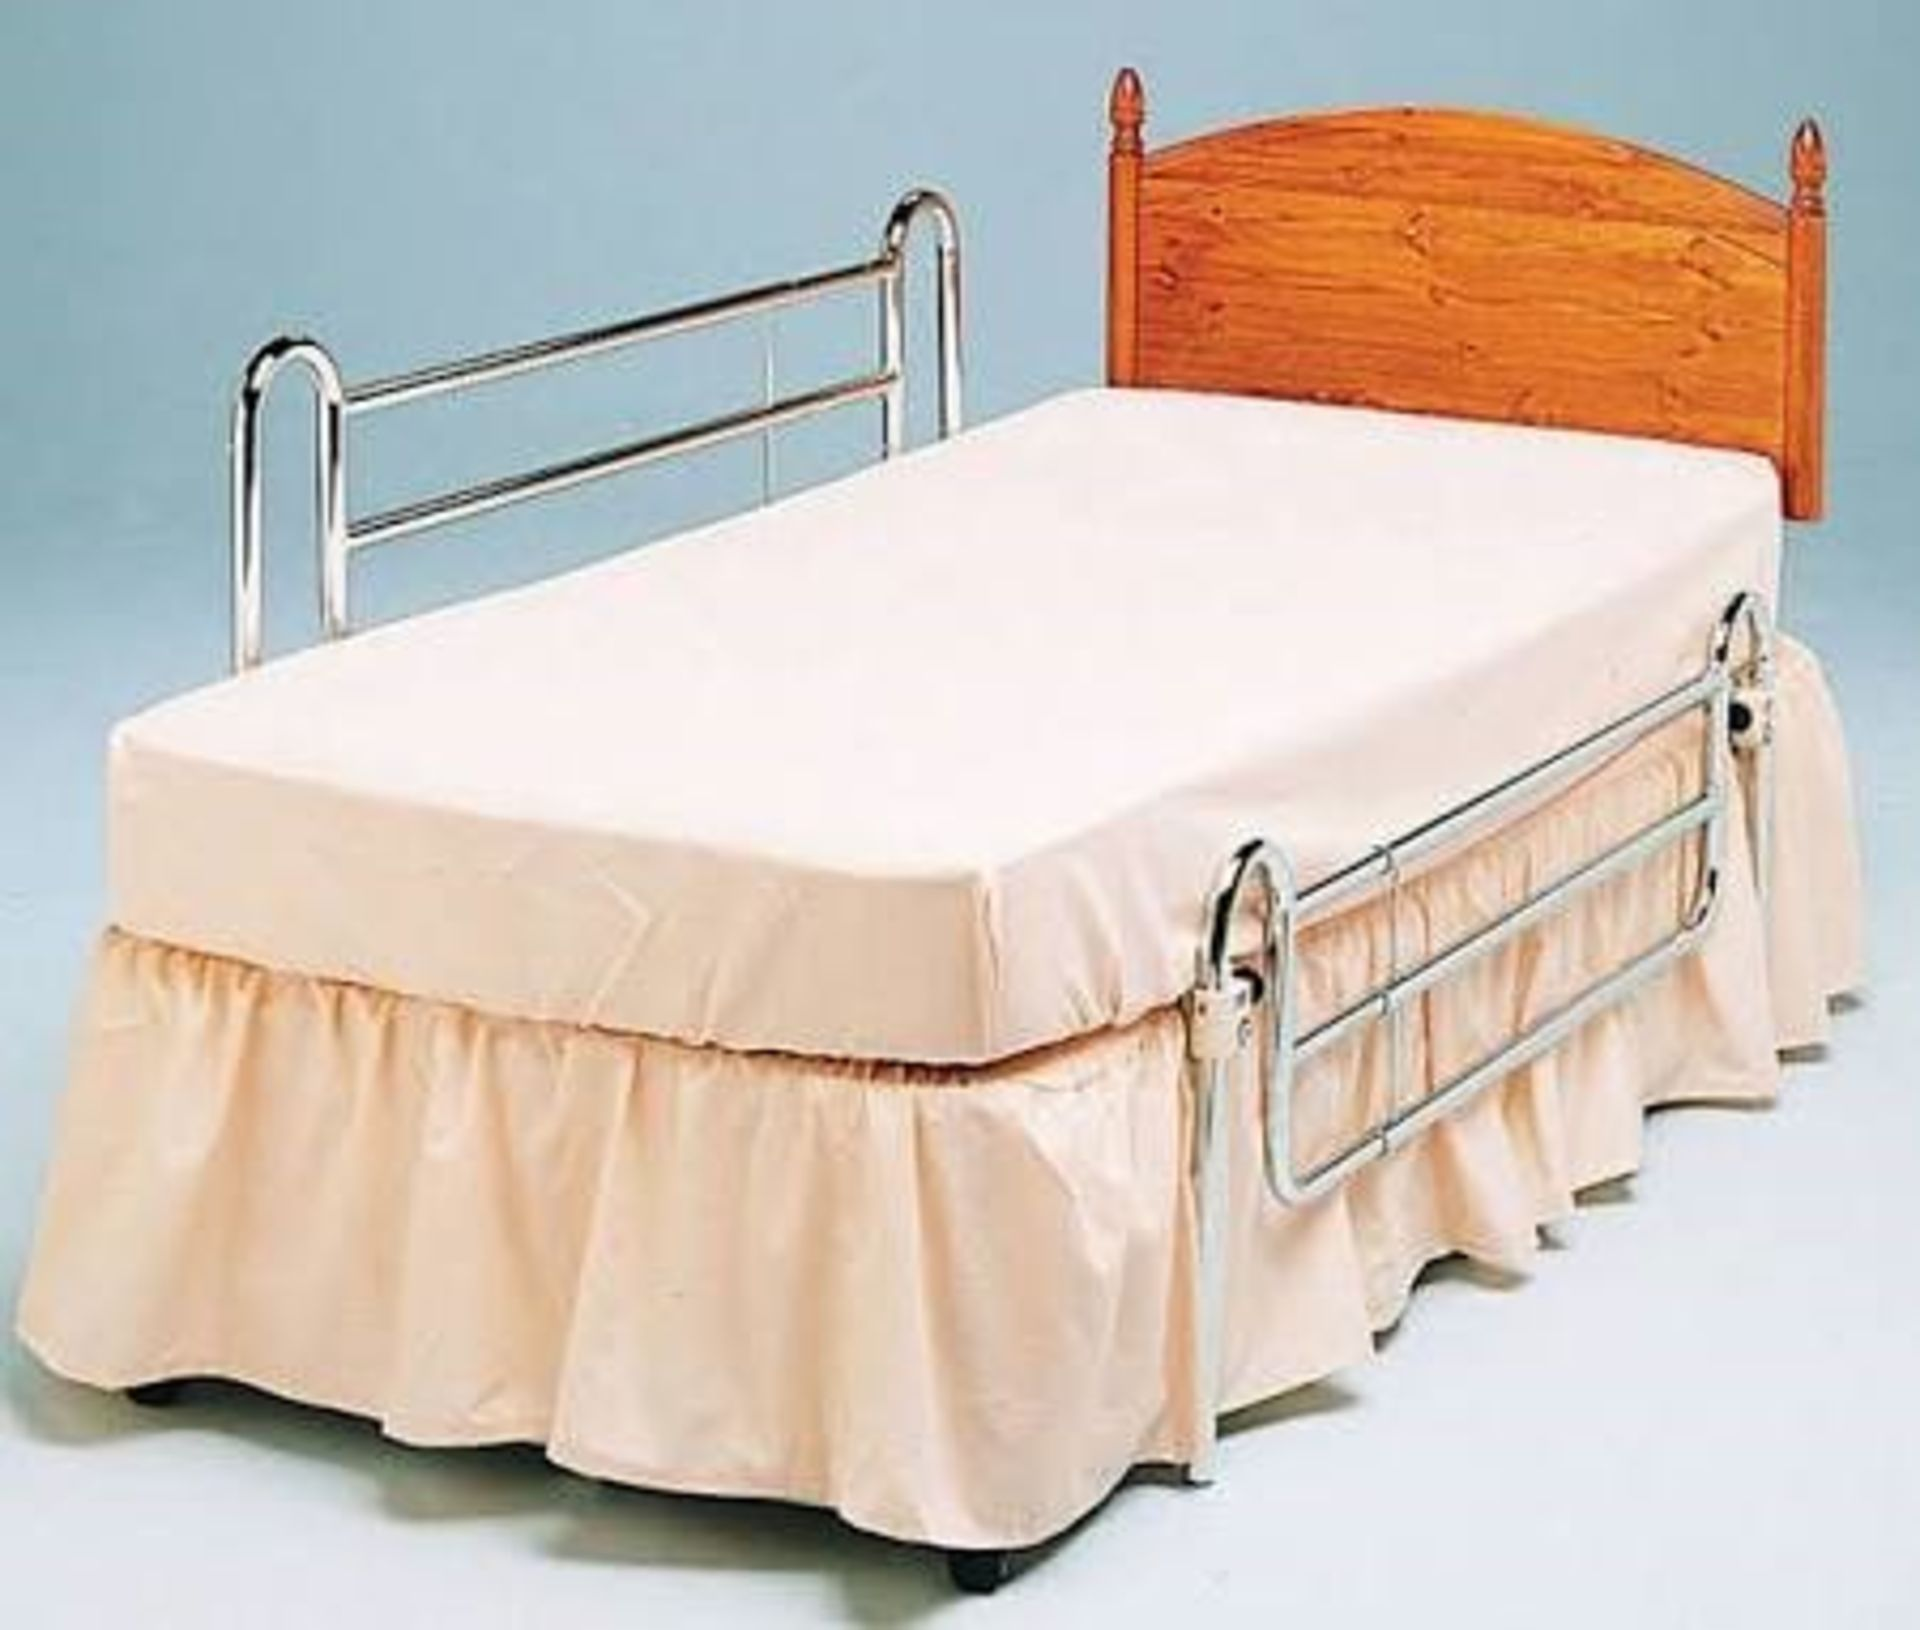 Lot 795 - ME : 1 AS NEW BOXED STANDARD BED RAILS FOR DIVAN BED / RRP £141.71 (VIEWING HIGHLY RECOMMENDED)